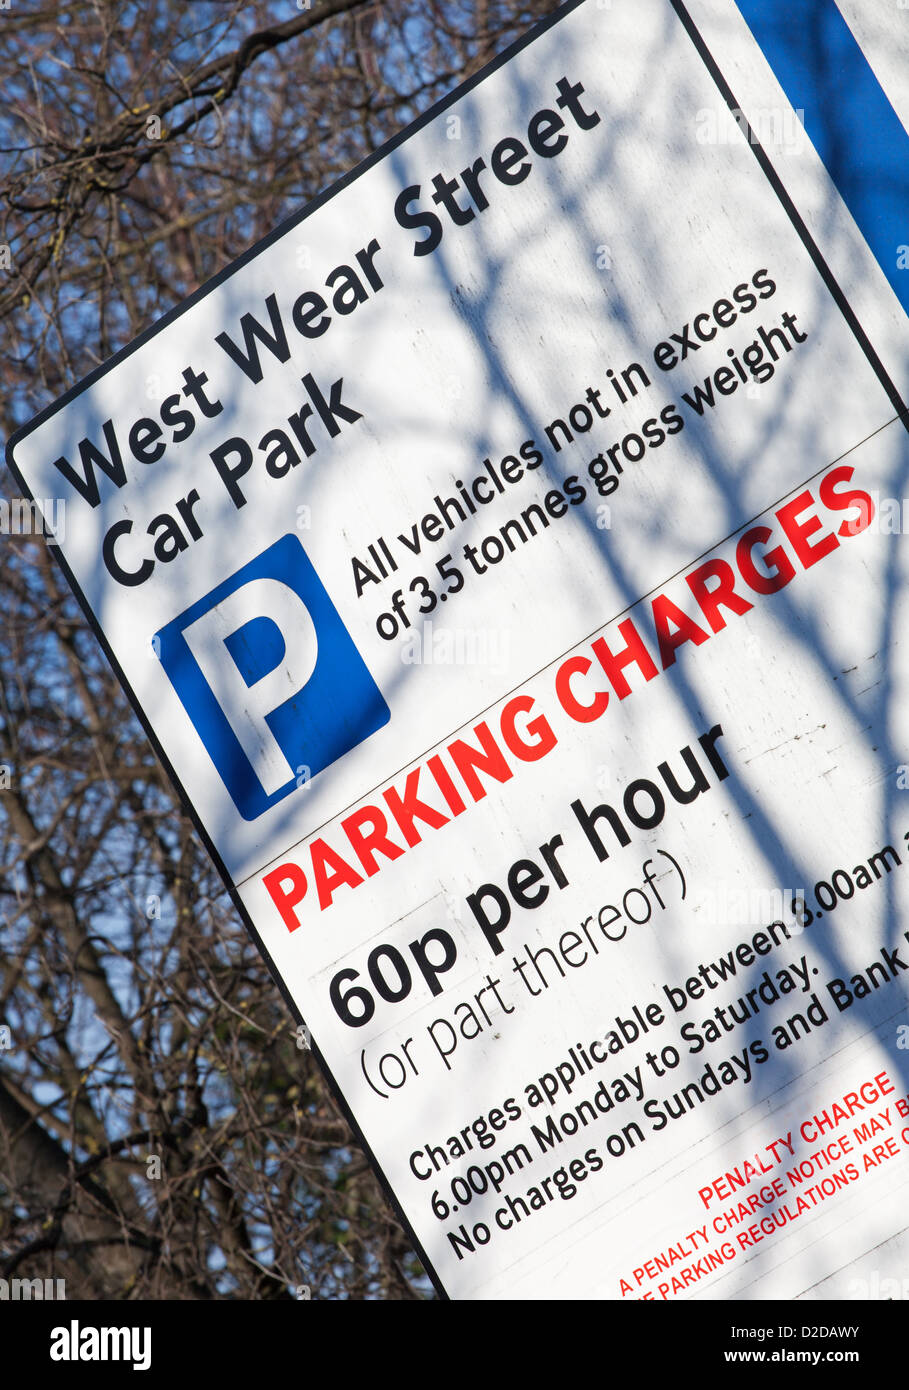 Car park sign parking charges - Stock Image